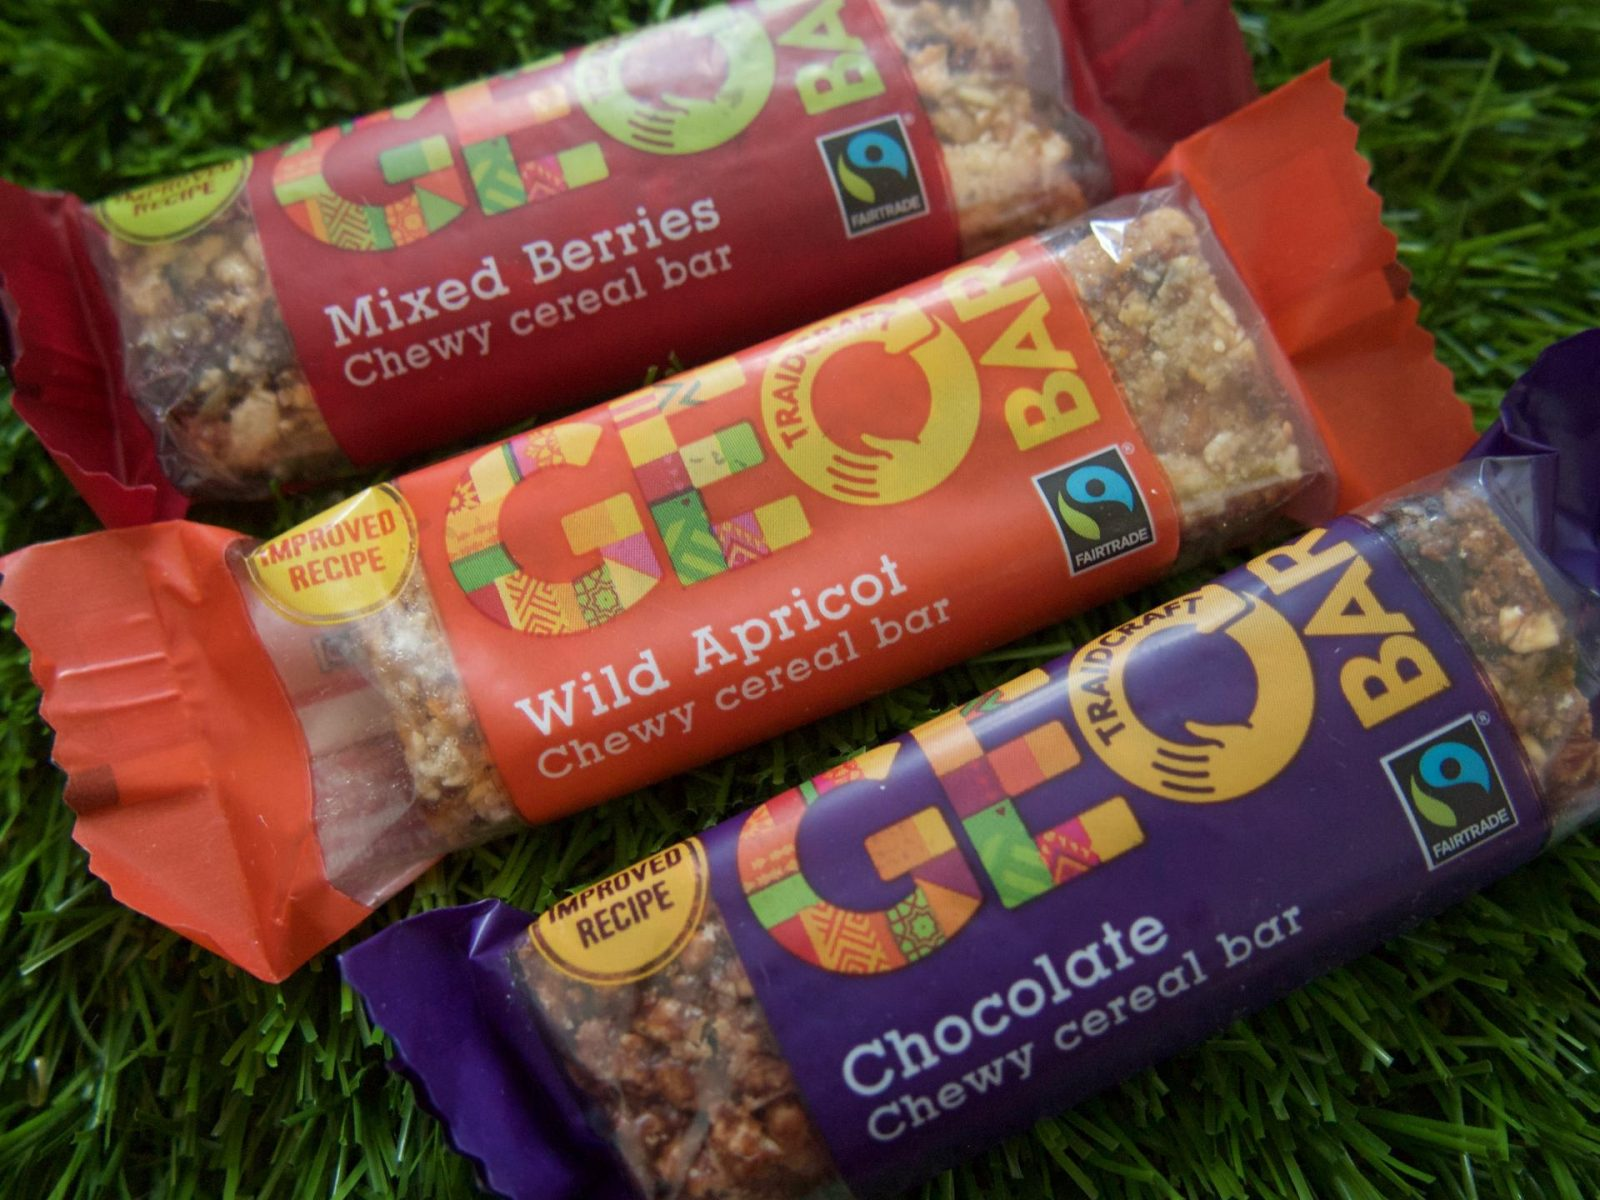 GEOBAR Chewy Cereal Bars Tastier Than Ever